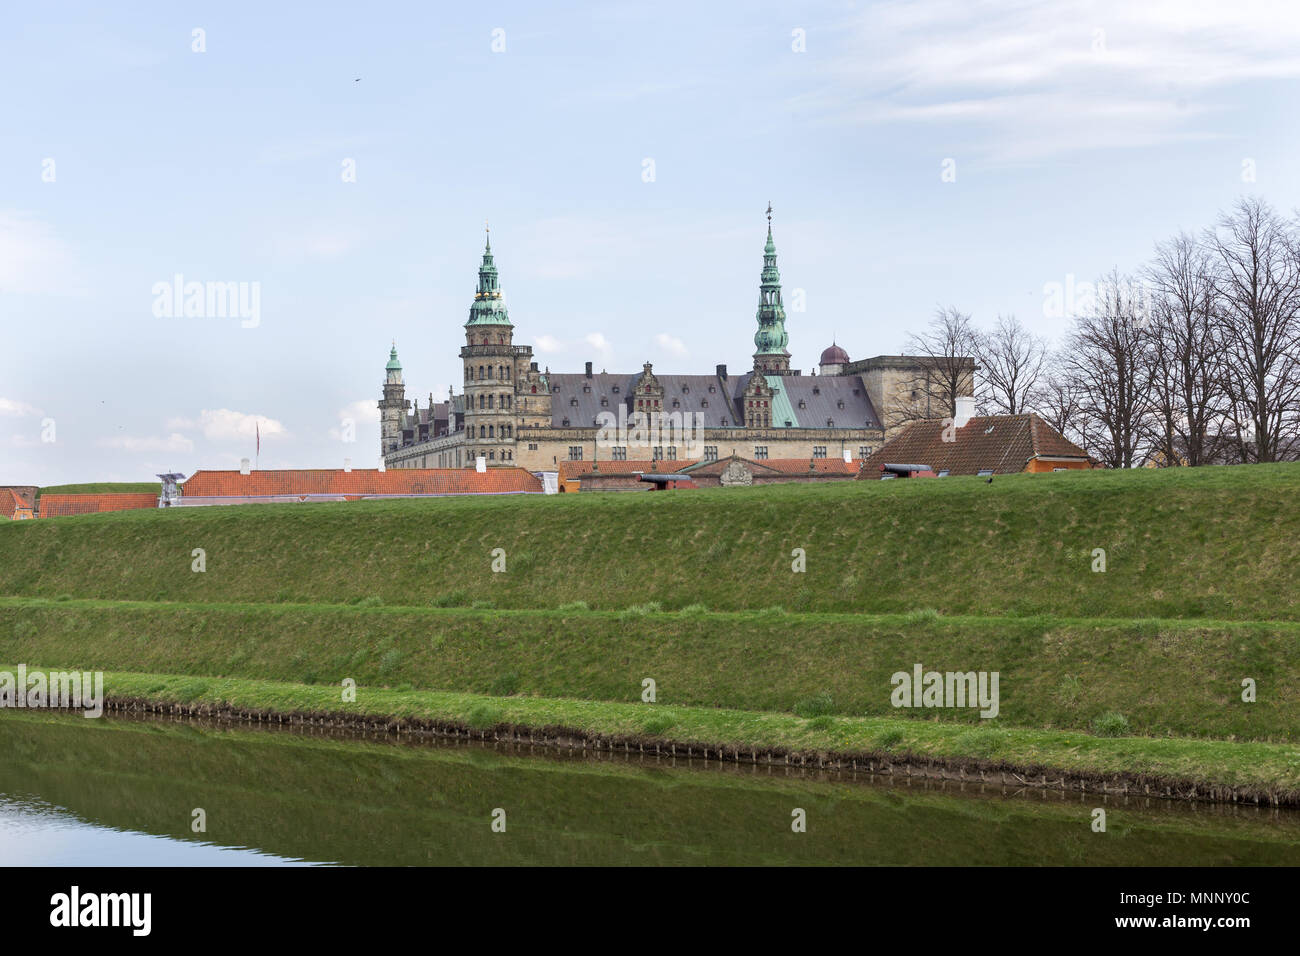 Kronborg Castle in Denmark - Stock Image